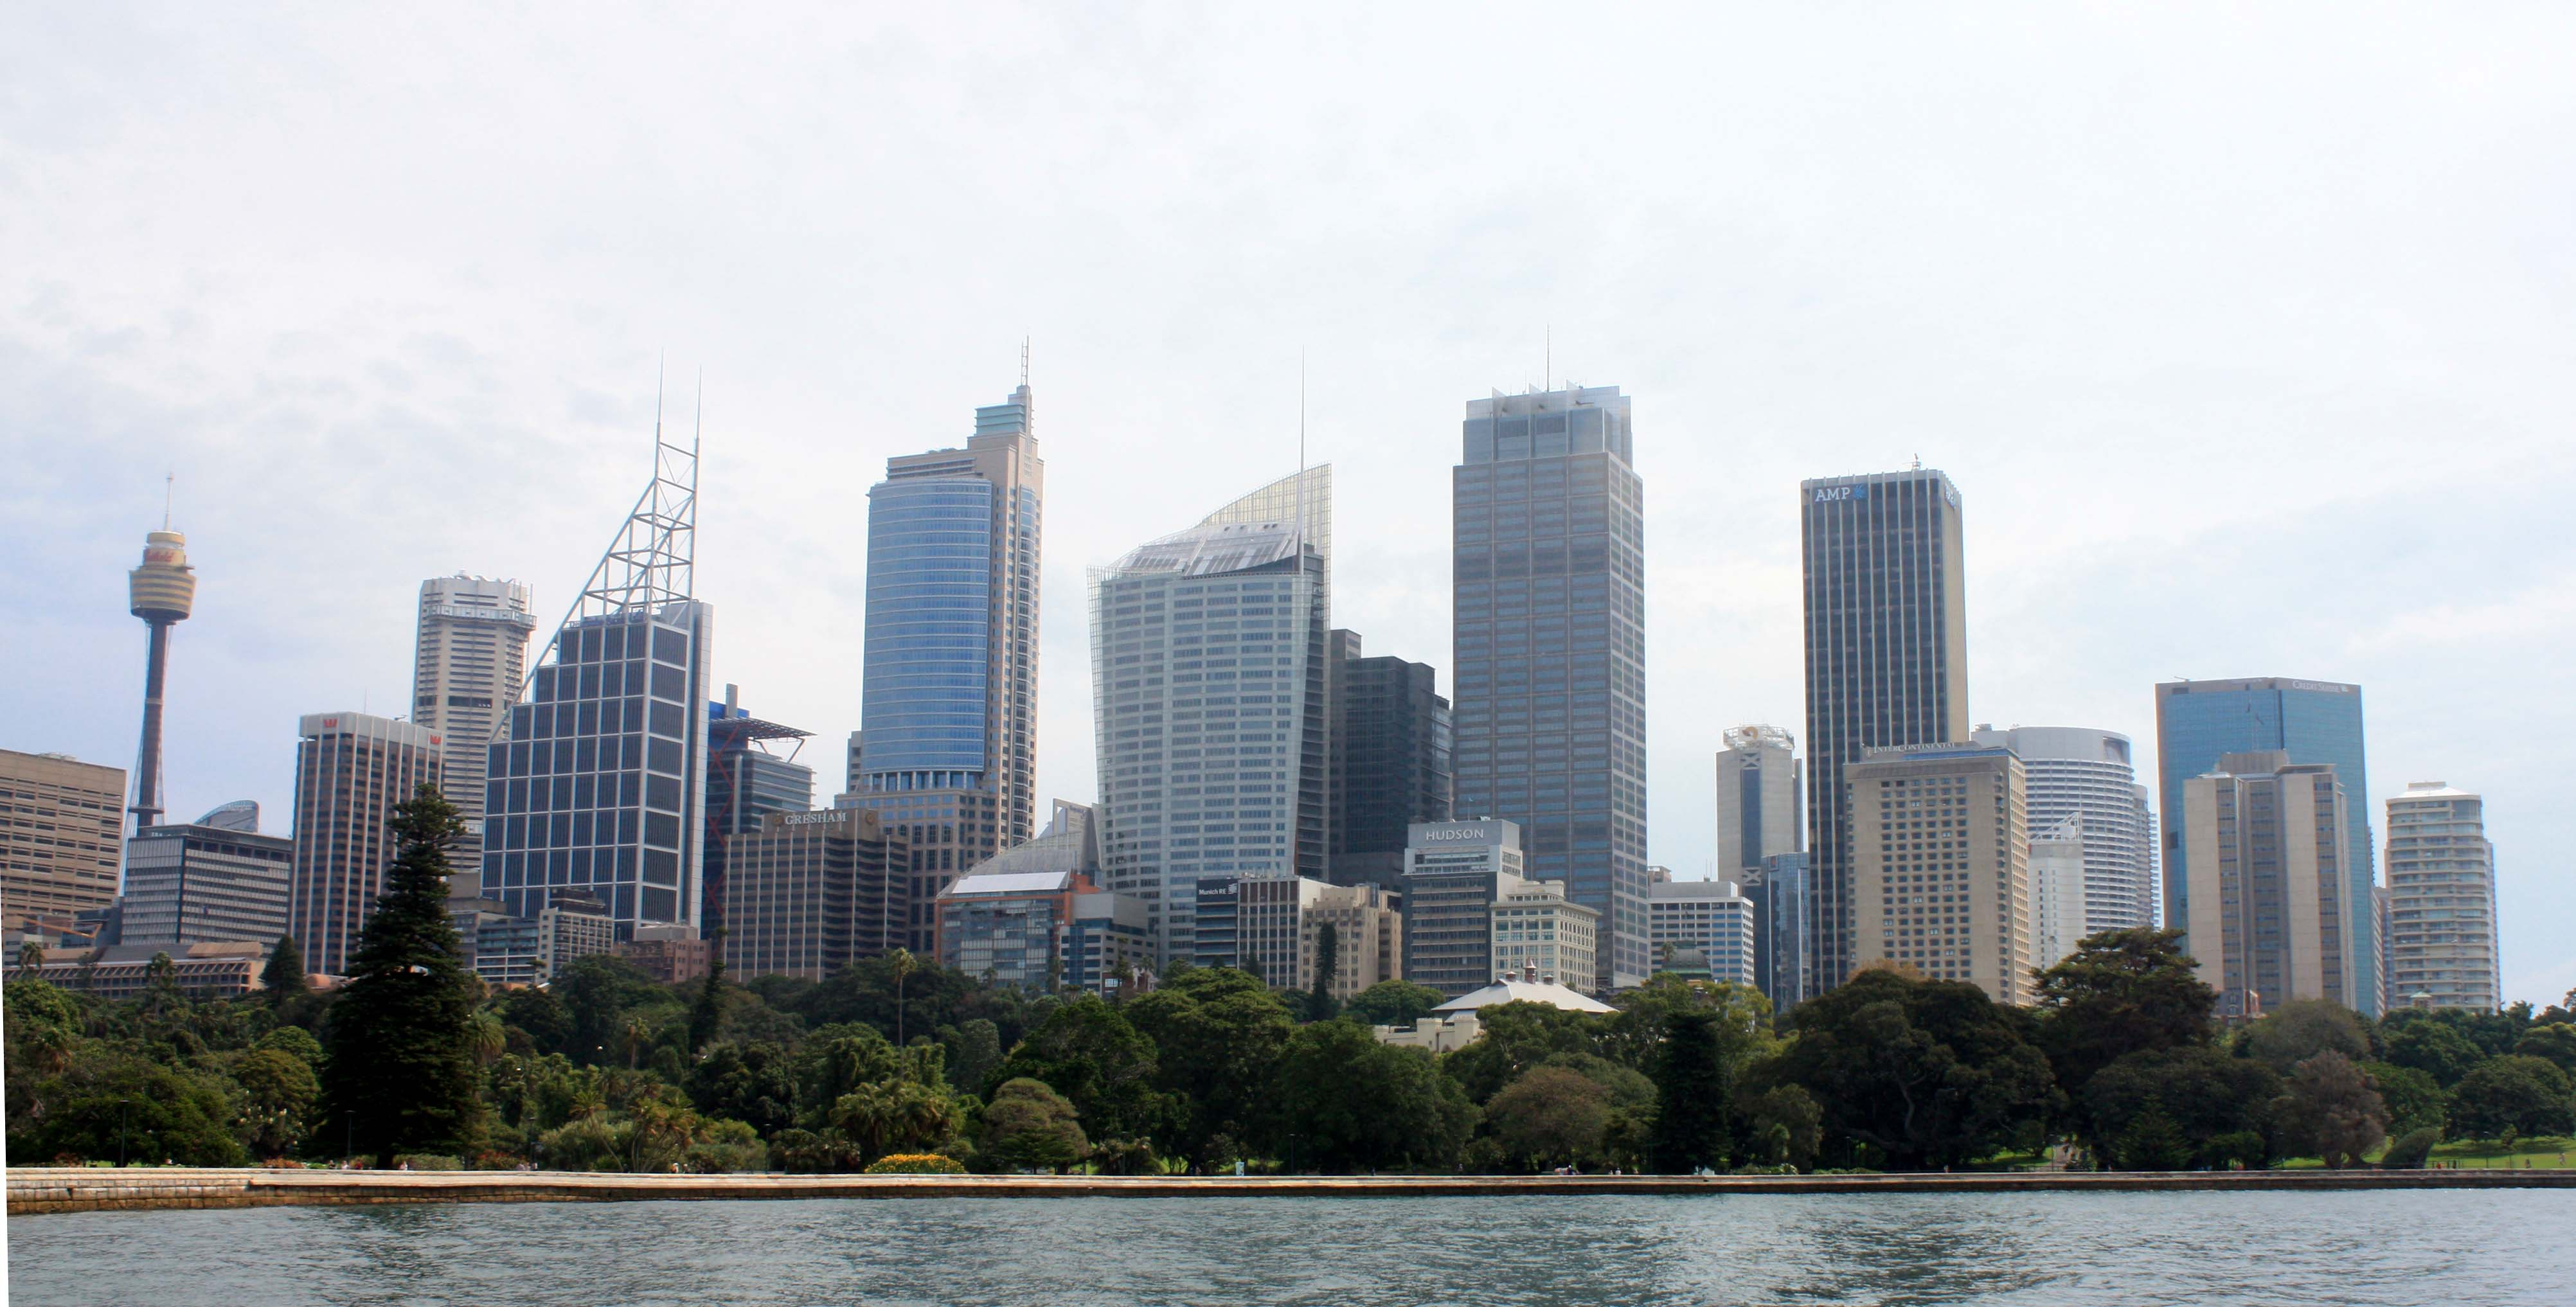 05 Sydney central business district CBD popularly referred to as the City Australia